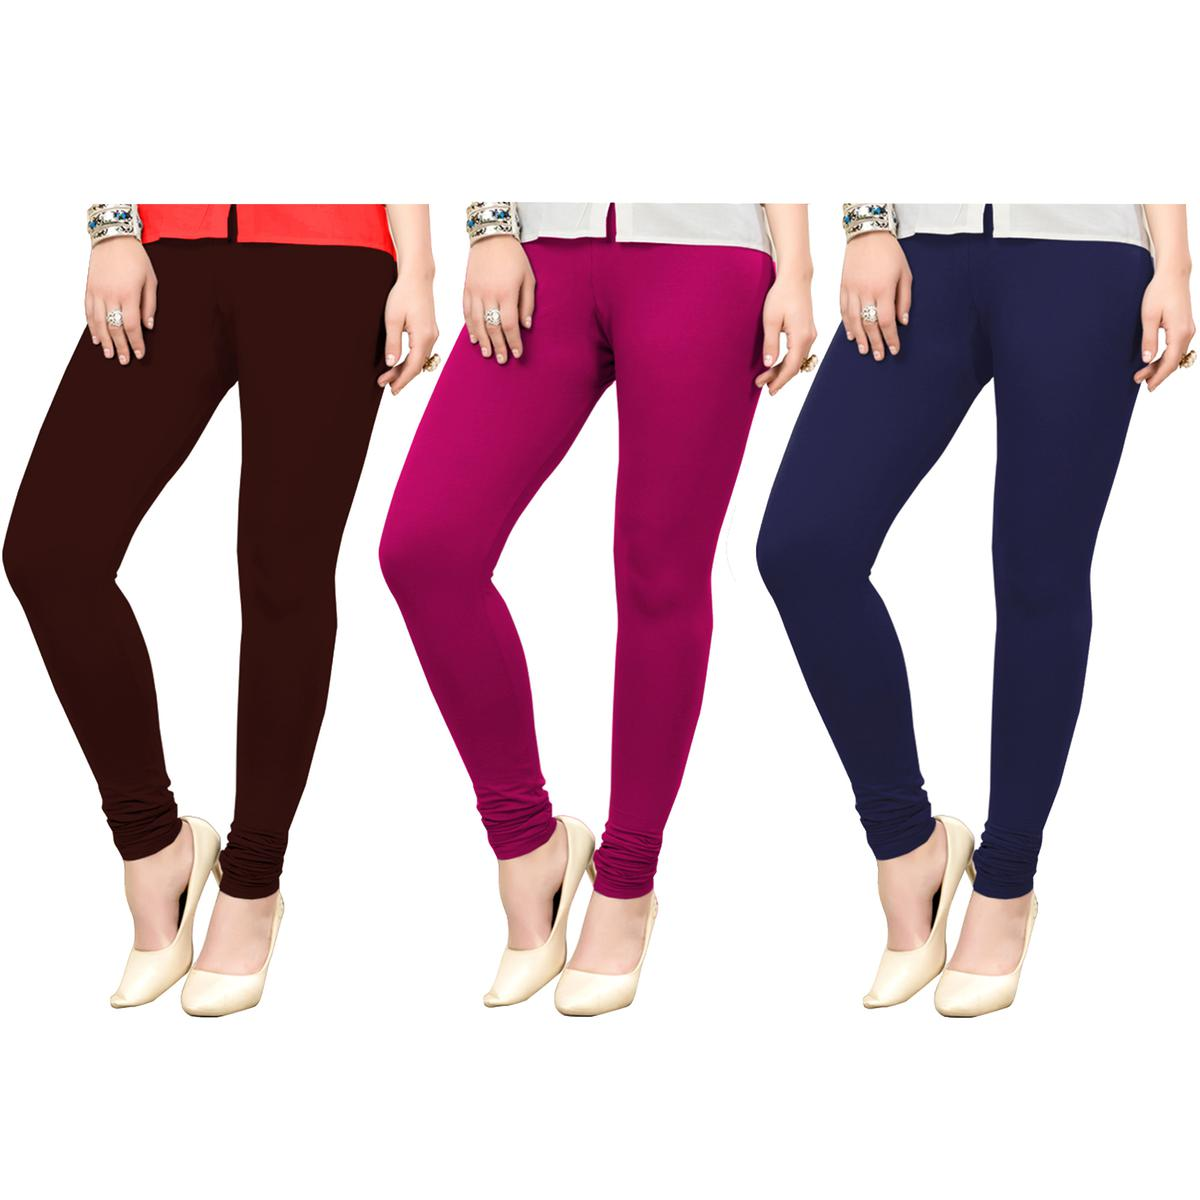 Captivating Casual Wear Ankle Length Cotton Leggings - Pack of 3